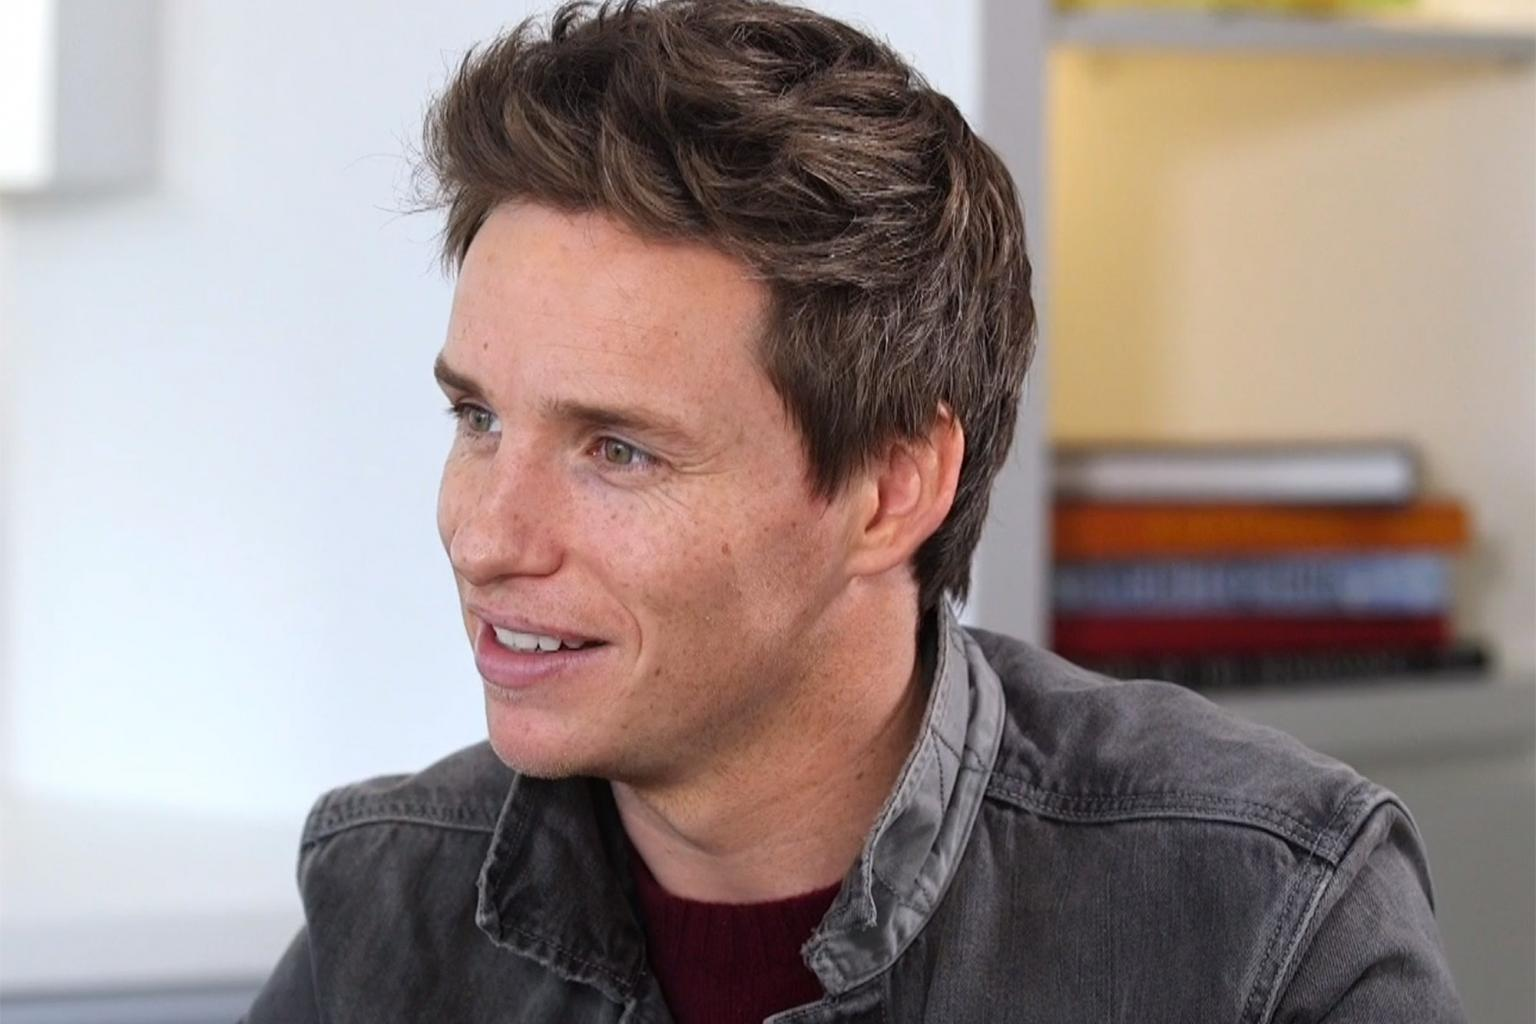 Fantastic Beasts Star Eddie Redmayne Reveals When He Feels Sexiest